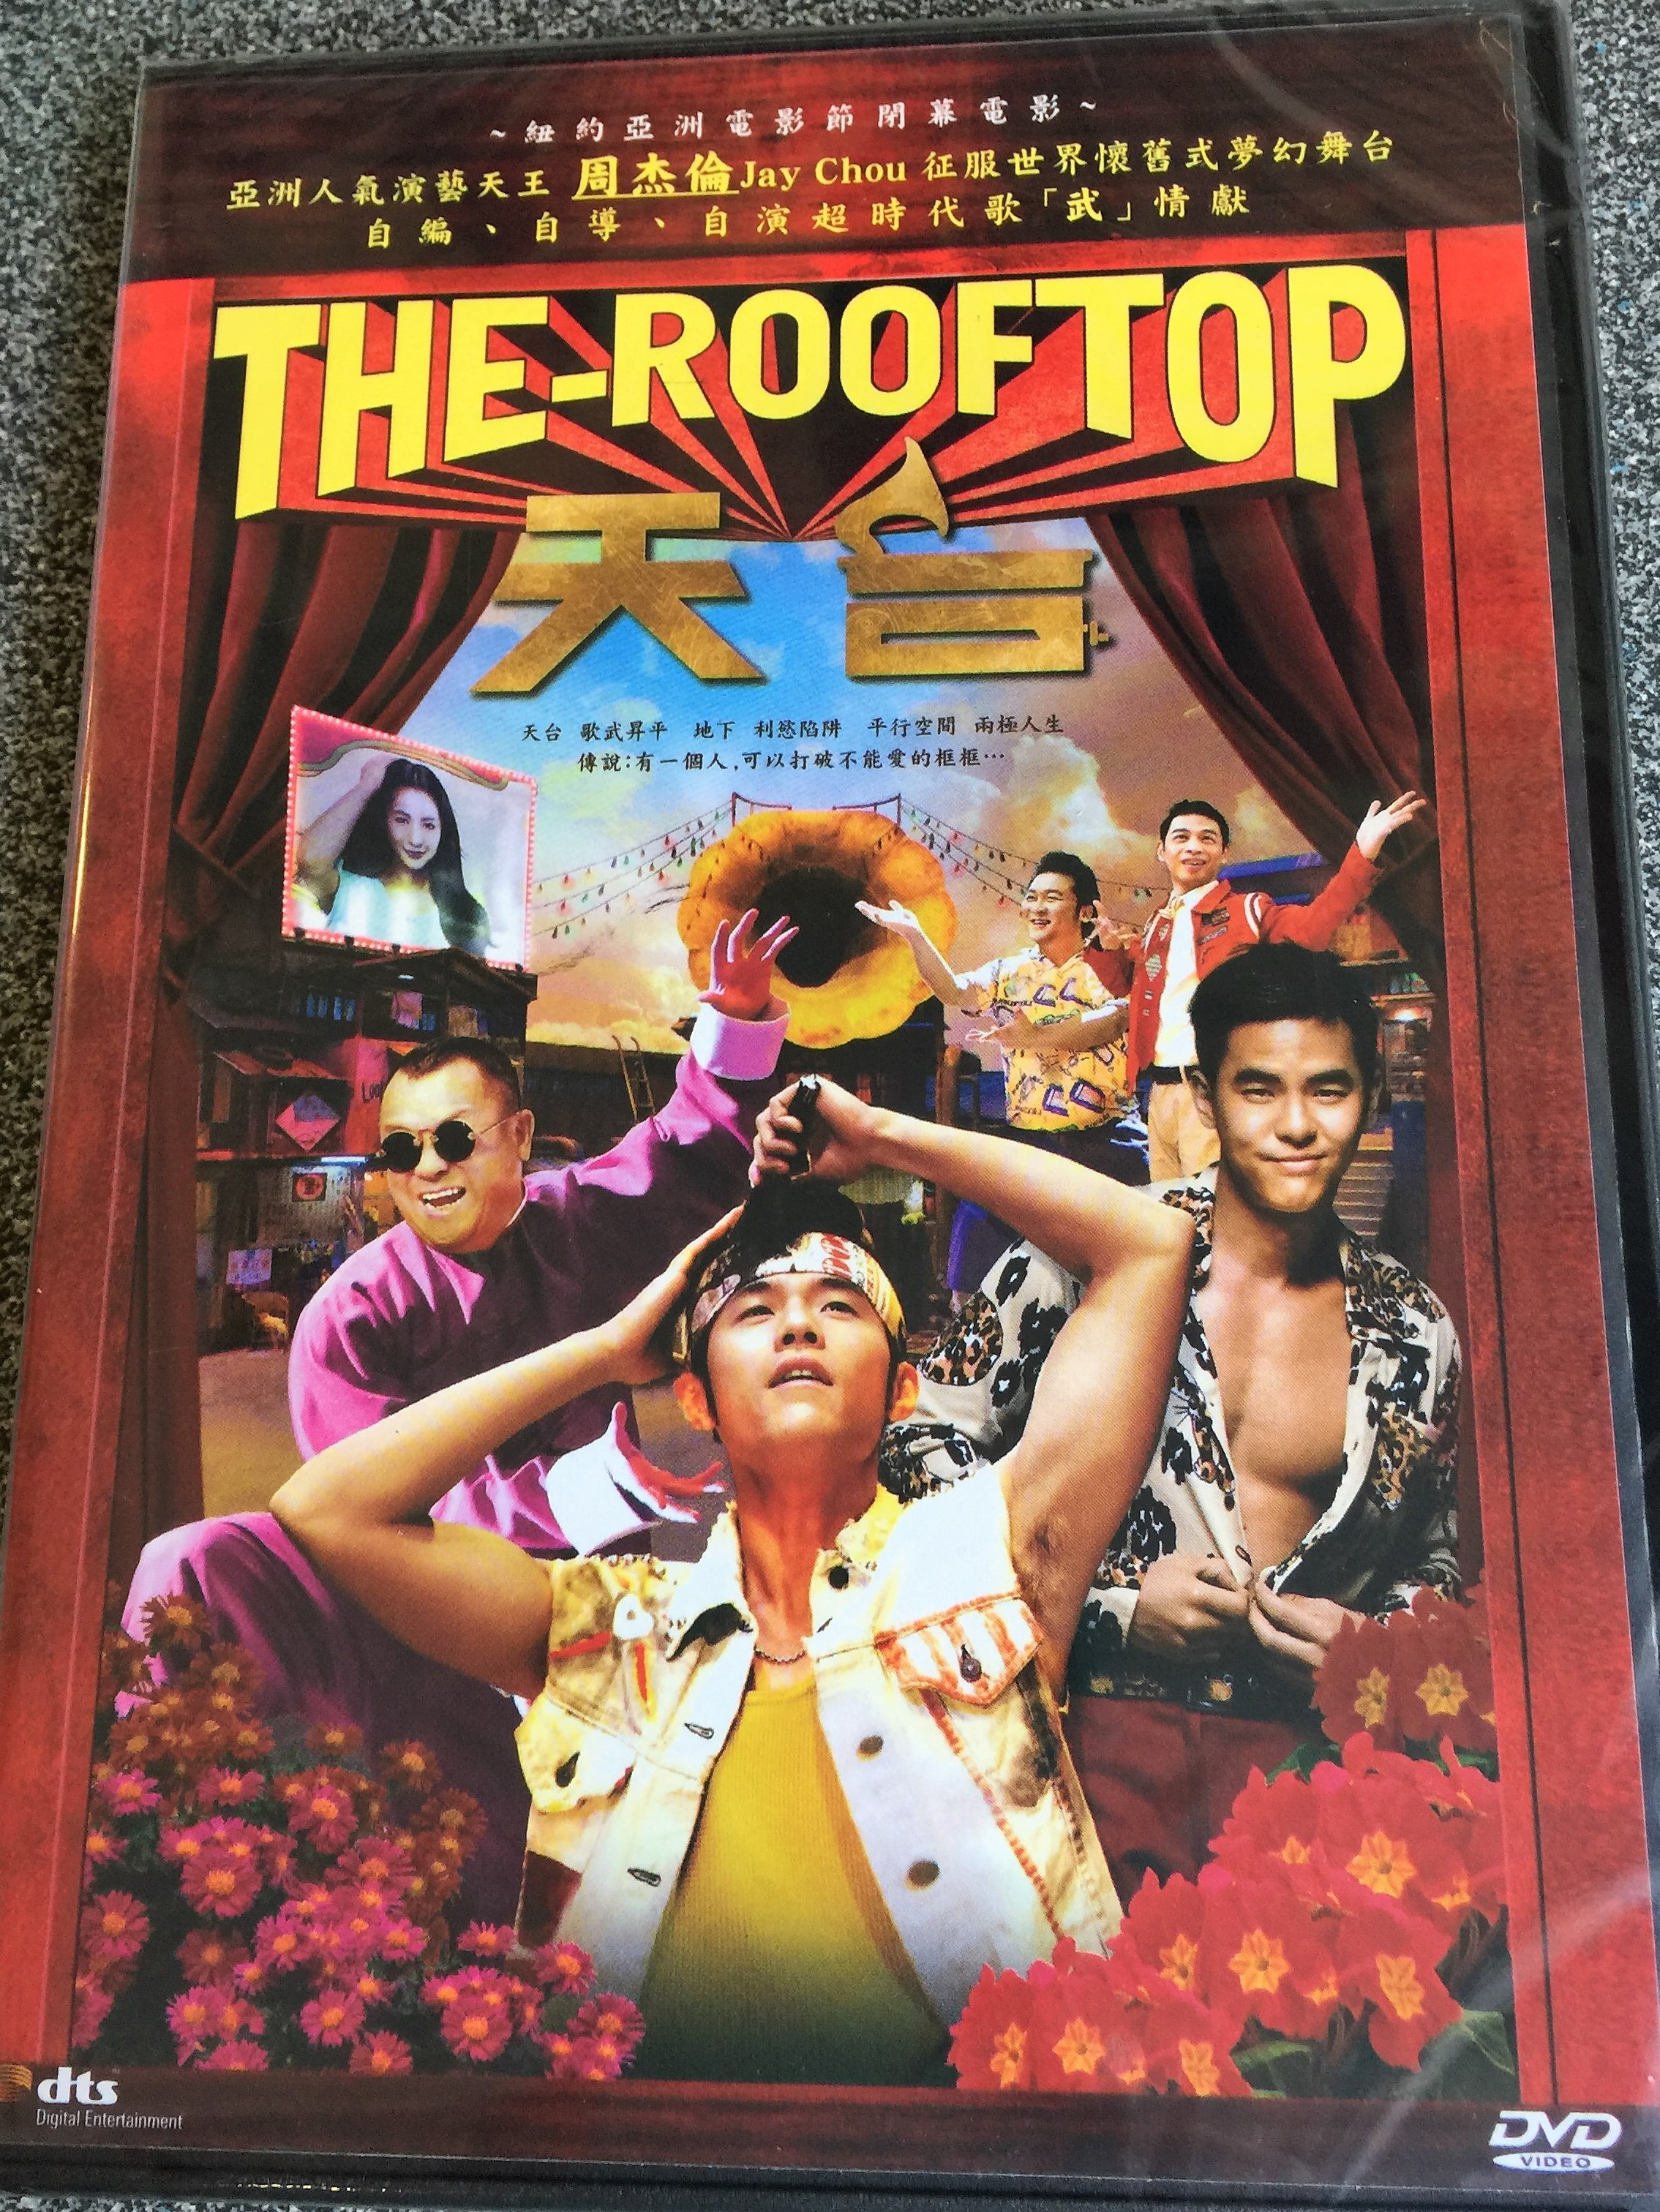 the-rooftop-dvd-2013-directed-by-jay-chou-1.jpg